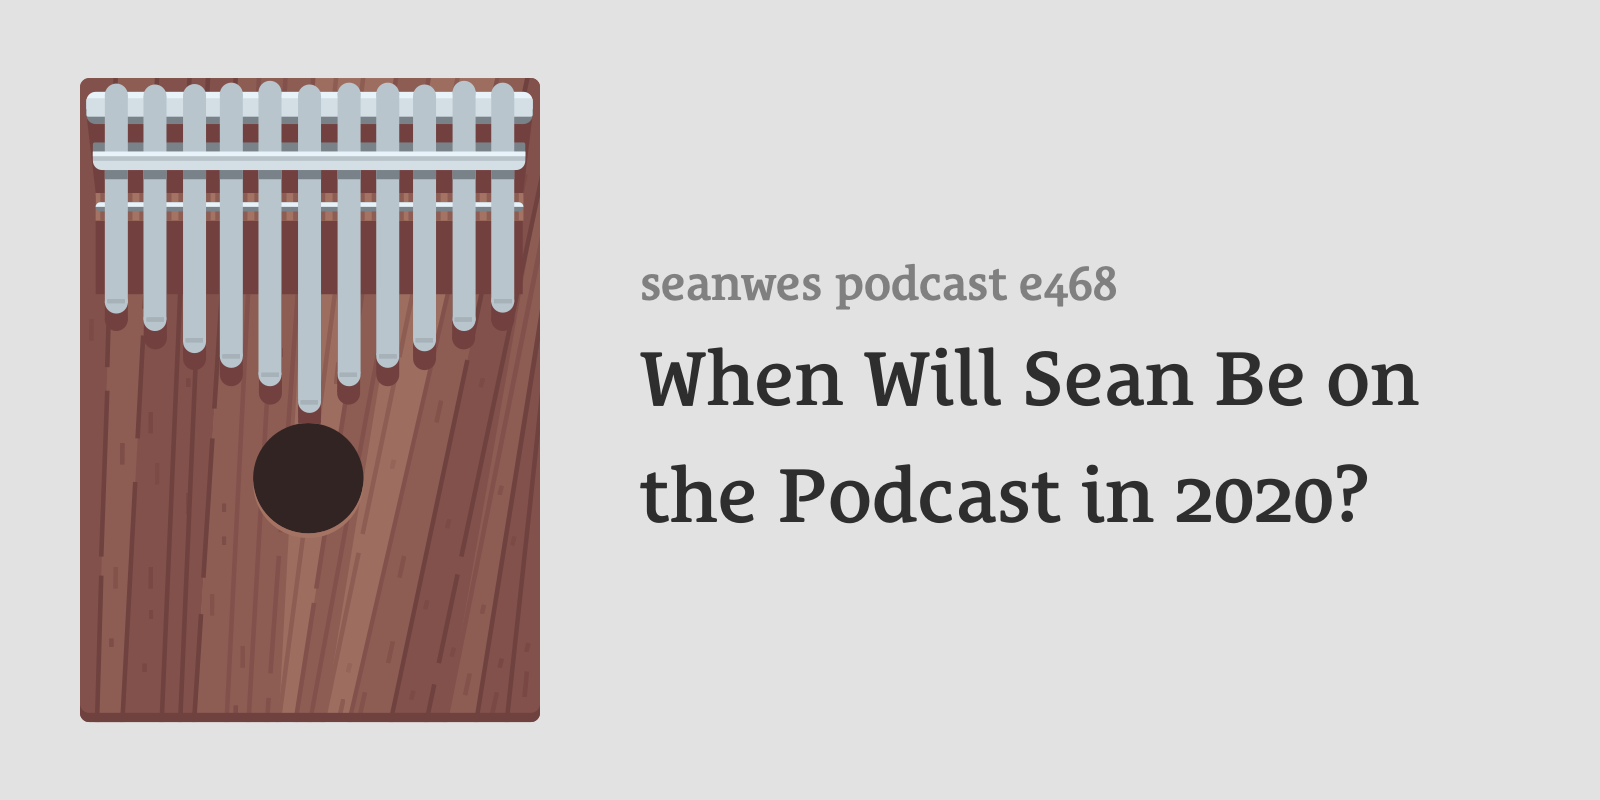 When Will Sean Be on the Podcast in 2020?